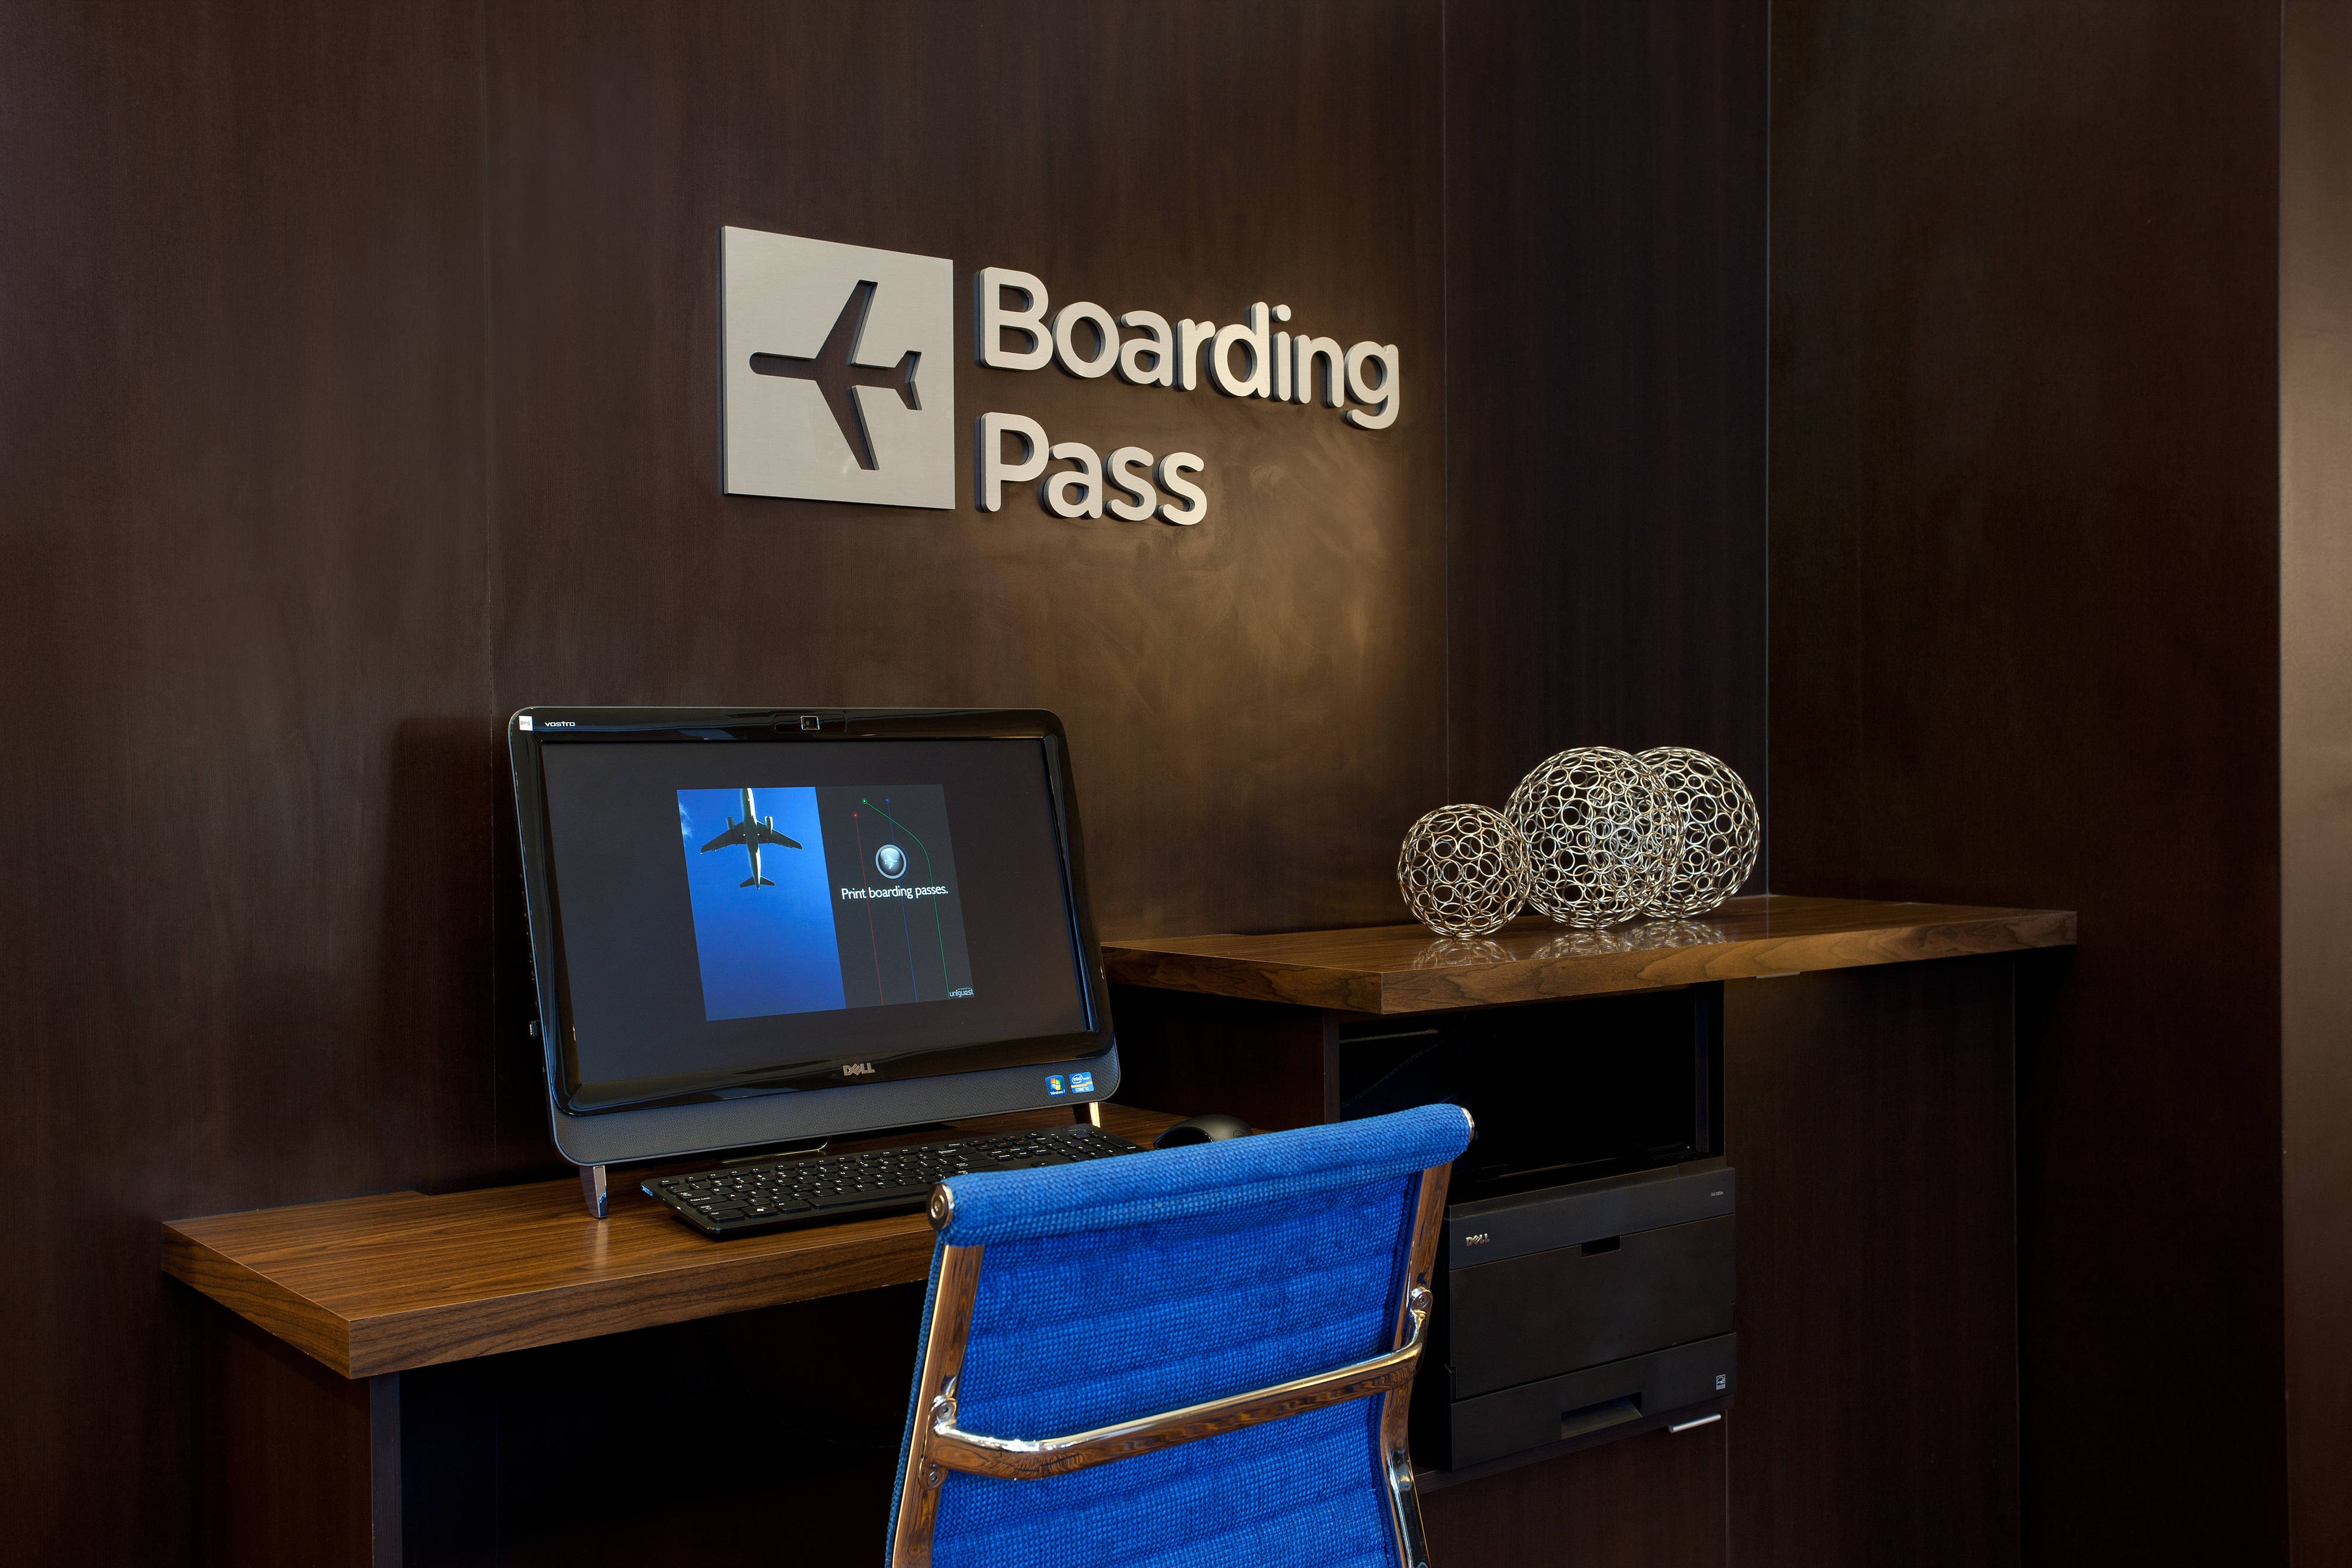 Boarding Pass Printing Station